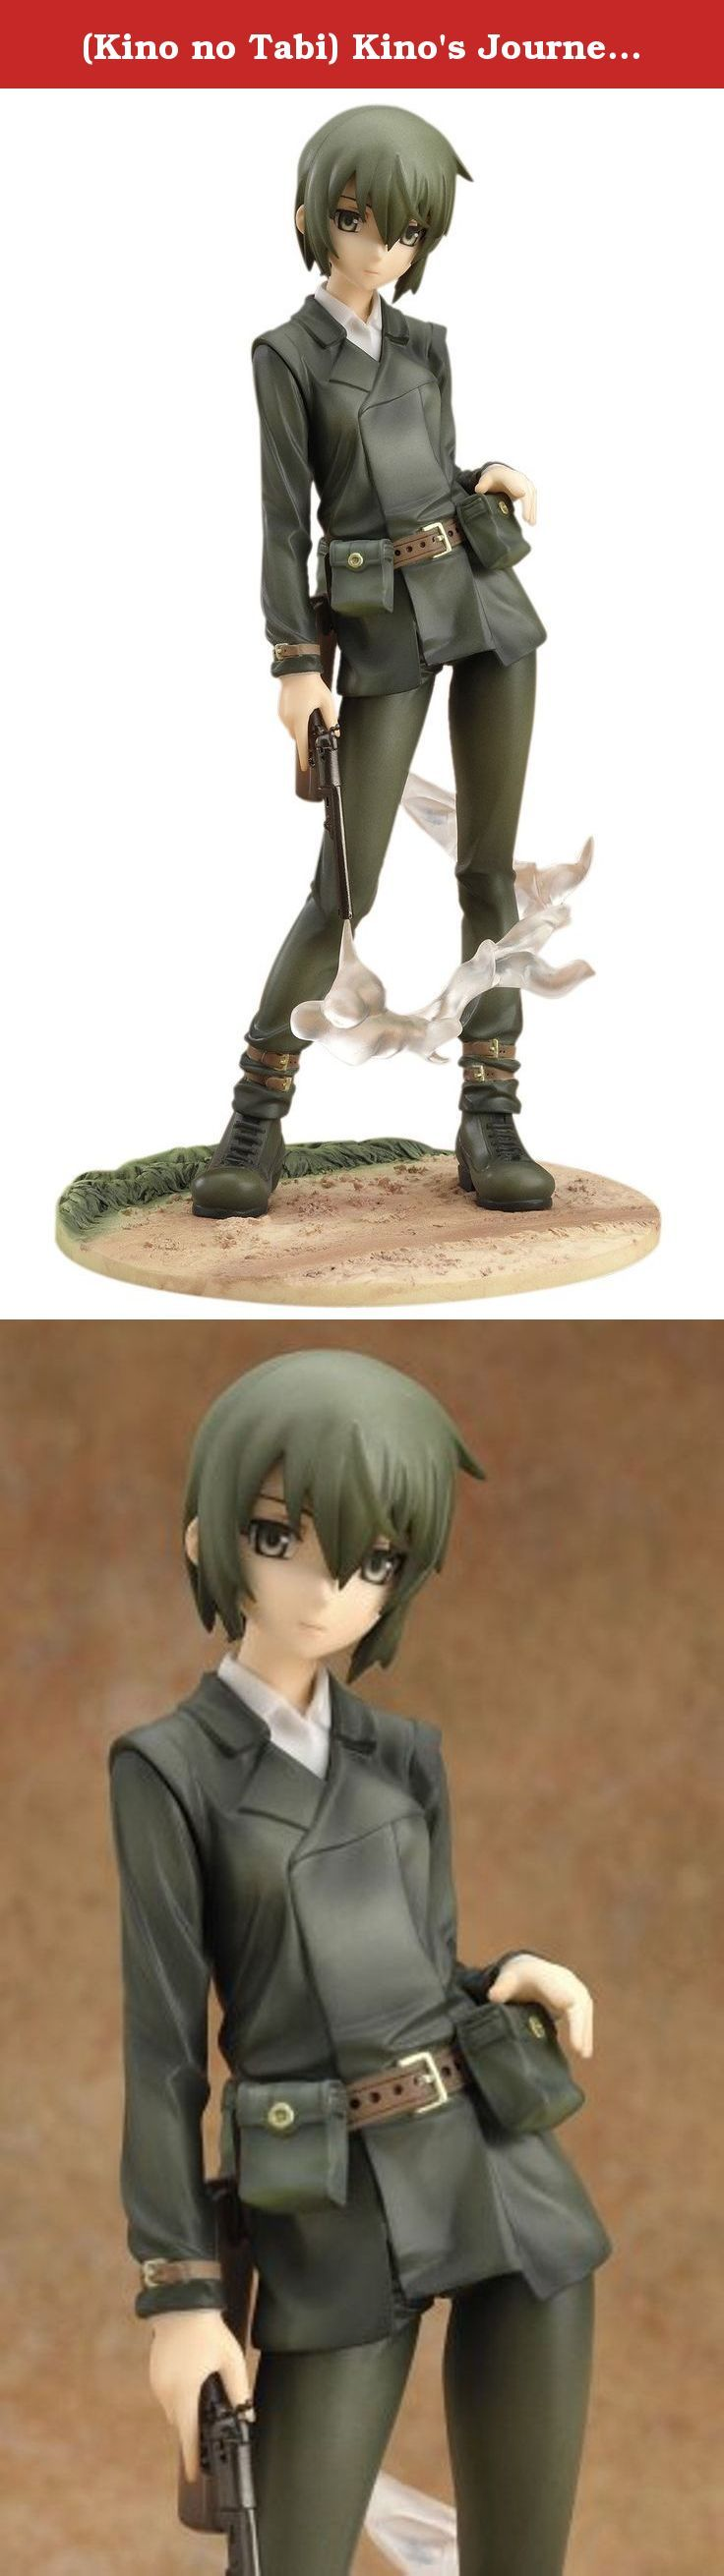 """(Kino no Tabi) Kino's Journey - The Beautiful World - 1/8 Scale PVC Figure >> Good Smile Company. And I call myself with me in the short-haired, actually a girl. Posing that took up favorite Pasueida """"canon"""" remains natural stance. From the calm knowledge, world of work is overflowing. Trail than muzzle smoke is such as to reproduce in clear parts, was finished in one body and attention to detail."""